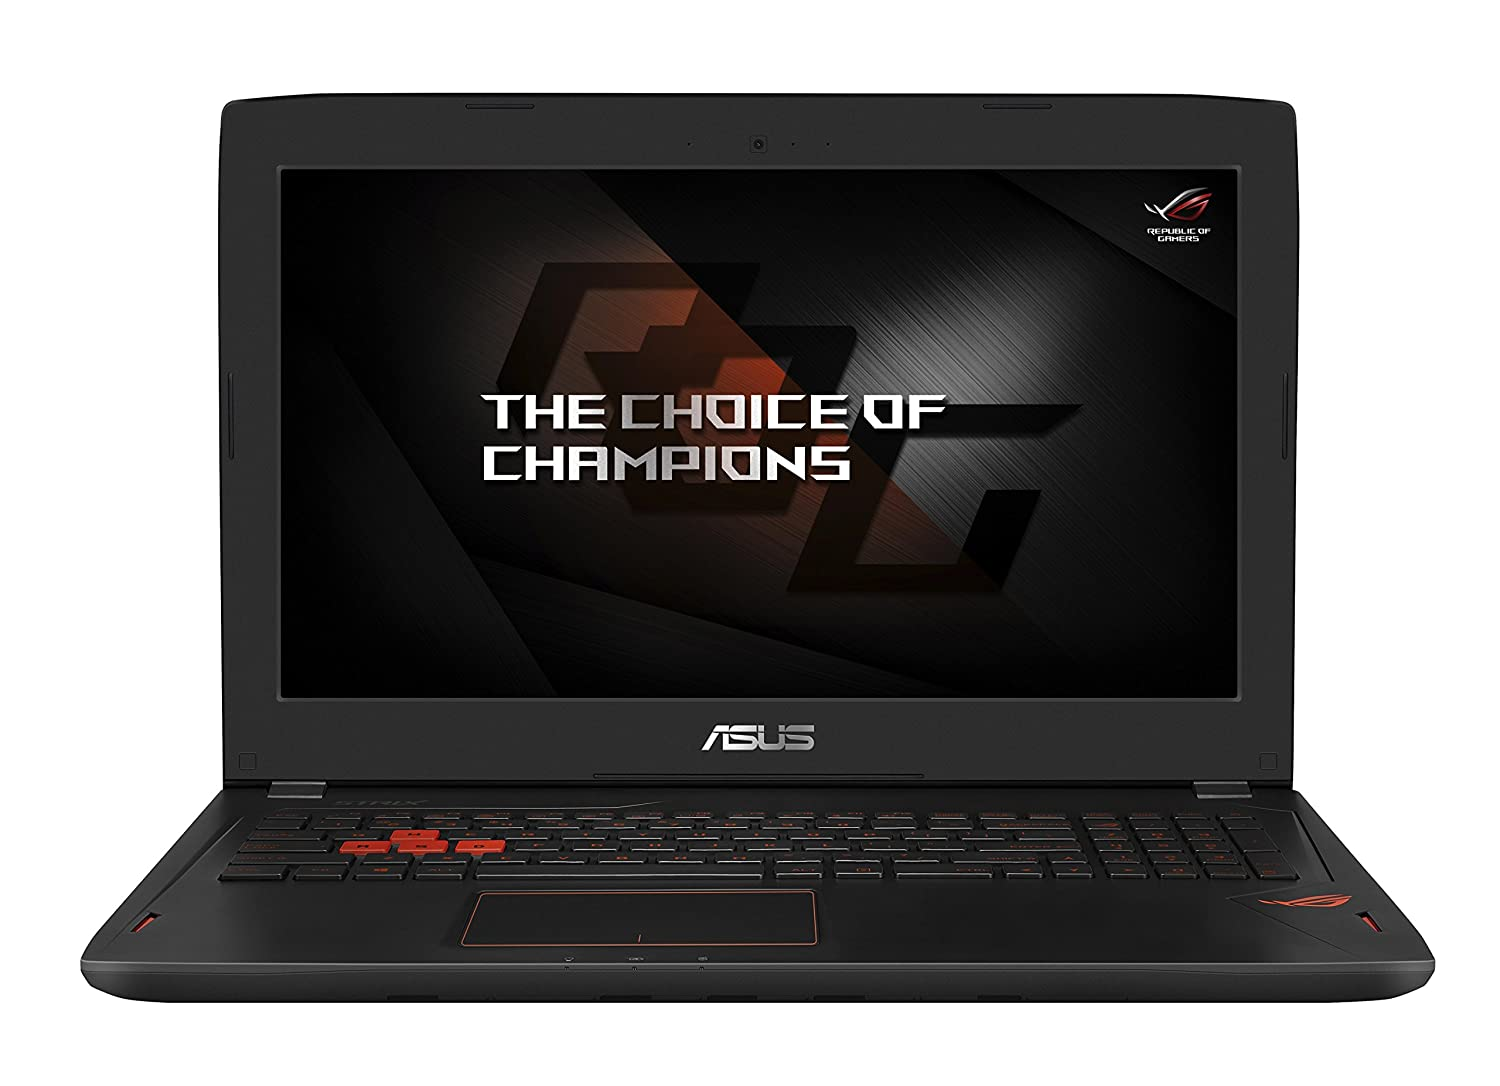 ASUS ROG GL502VS-FY043T 2.6GHz I7-6700HQ 15.6